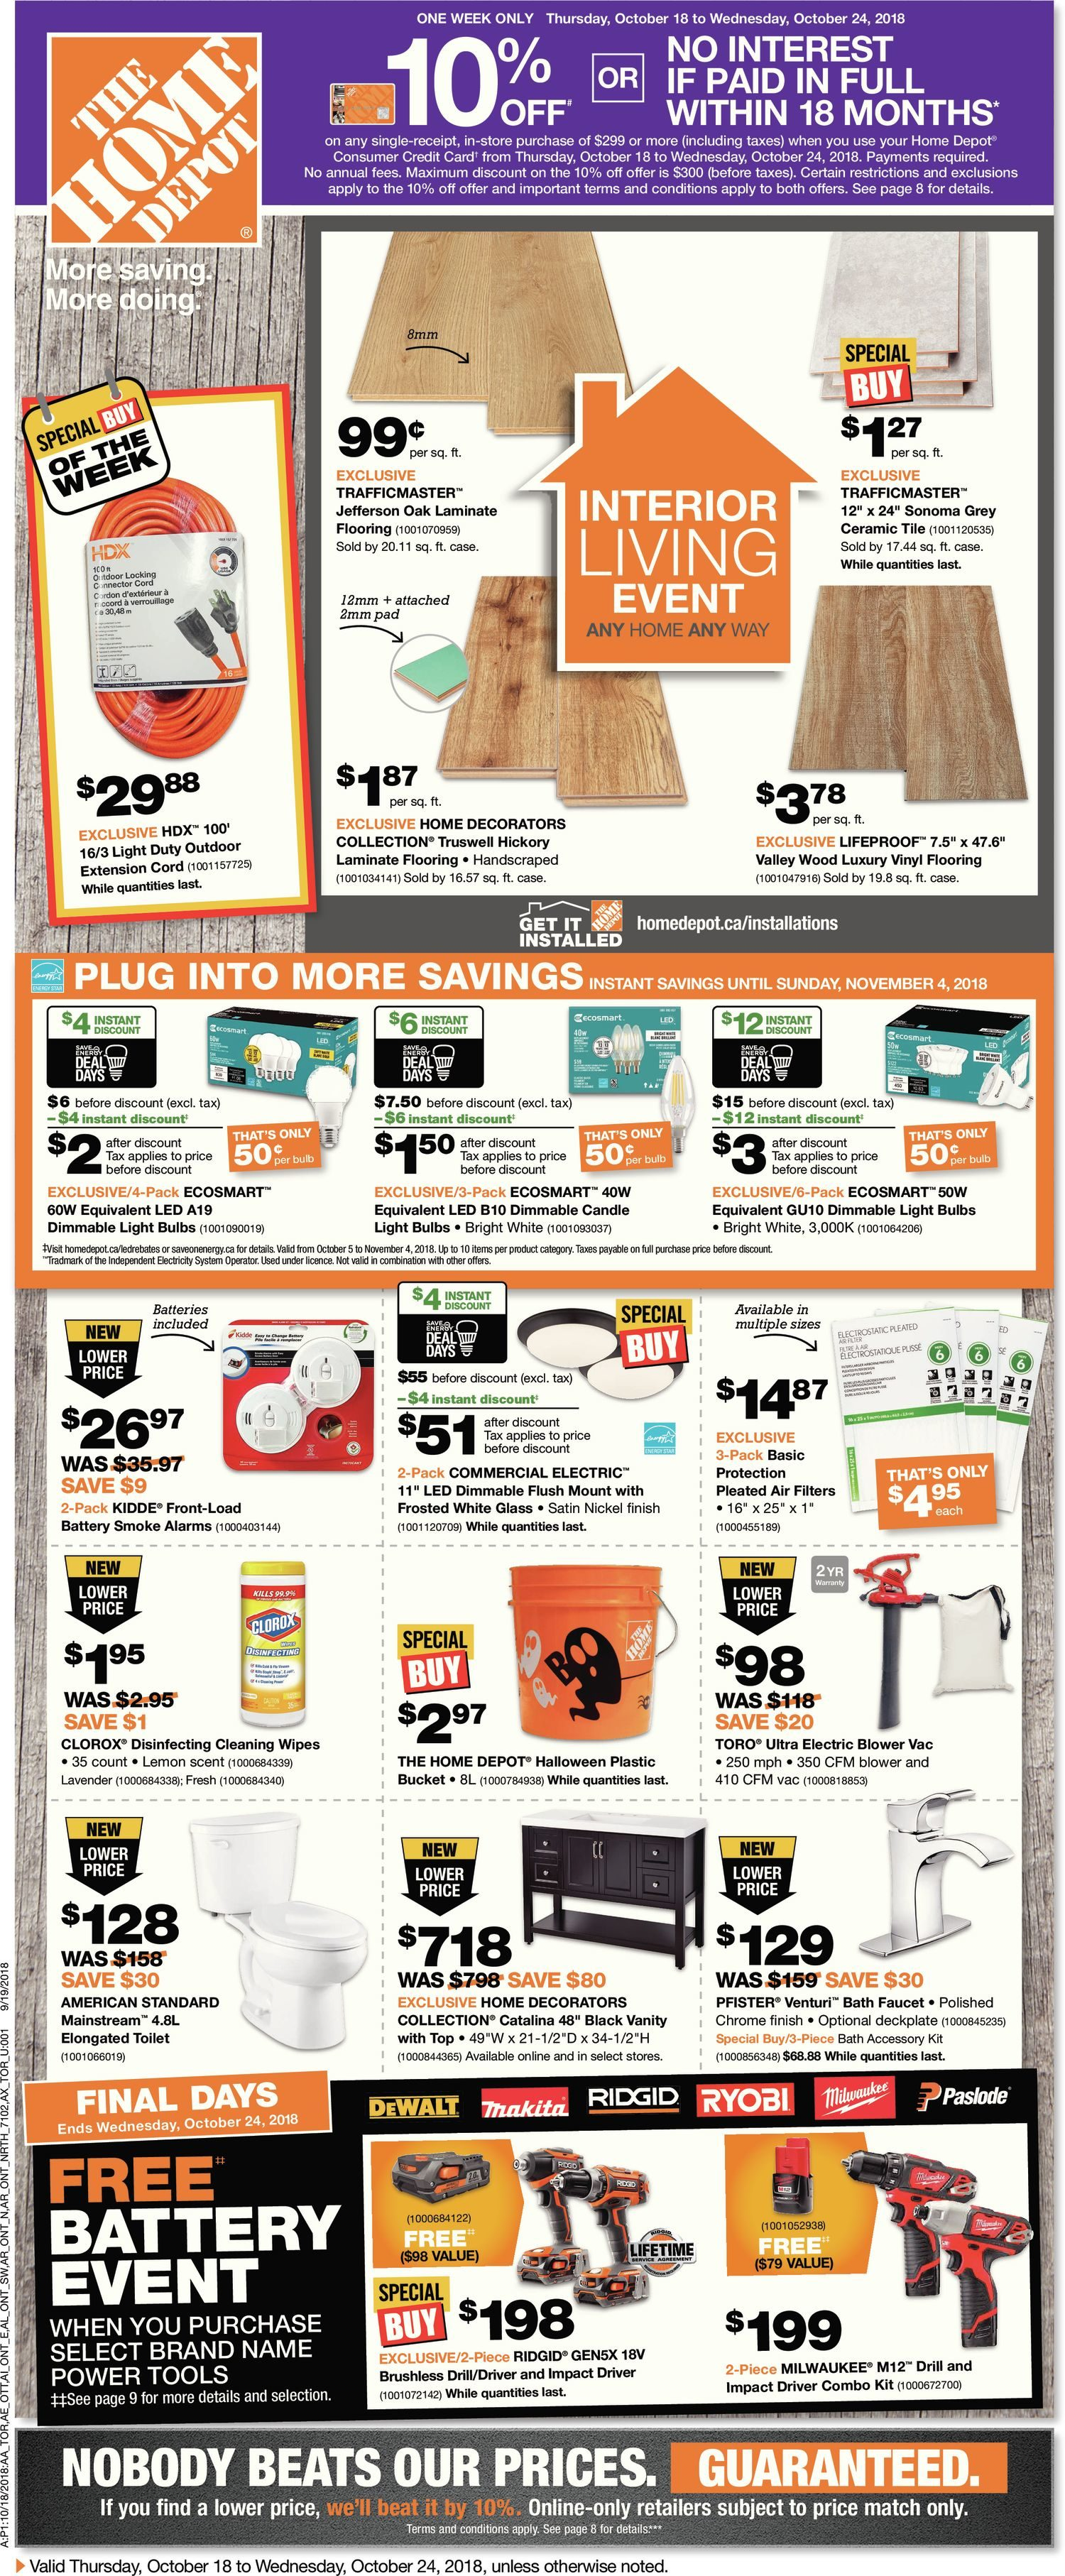 Home Depot Weekly Flyer - Weekly - Interior Living Event - Oct 18